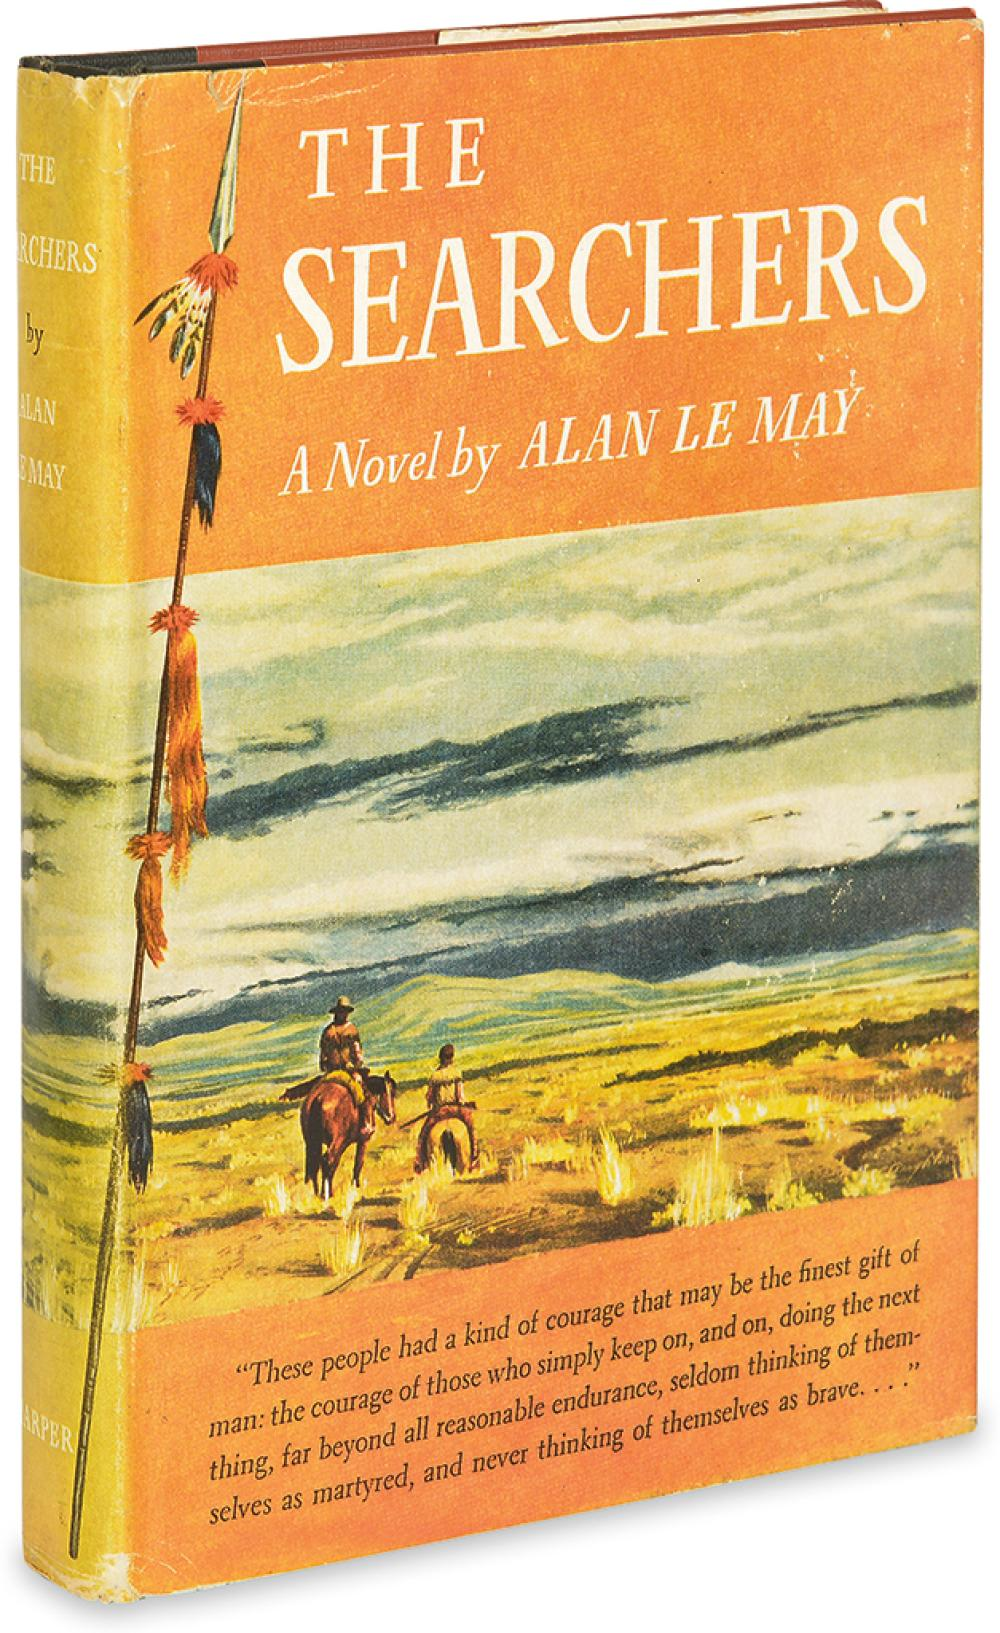 LE MAY, ALAN. The Searchers.